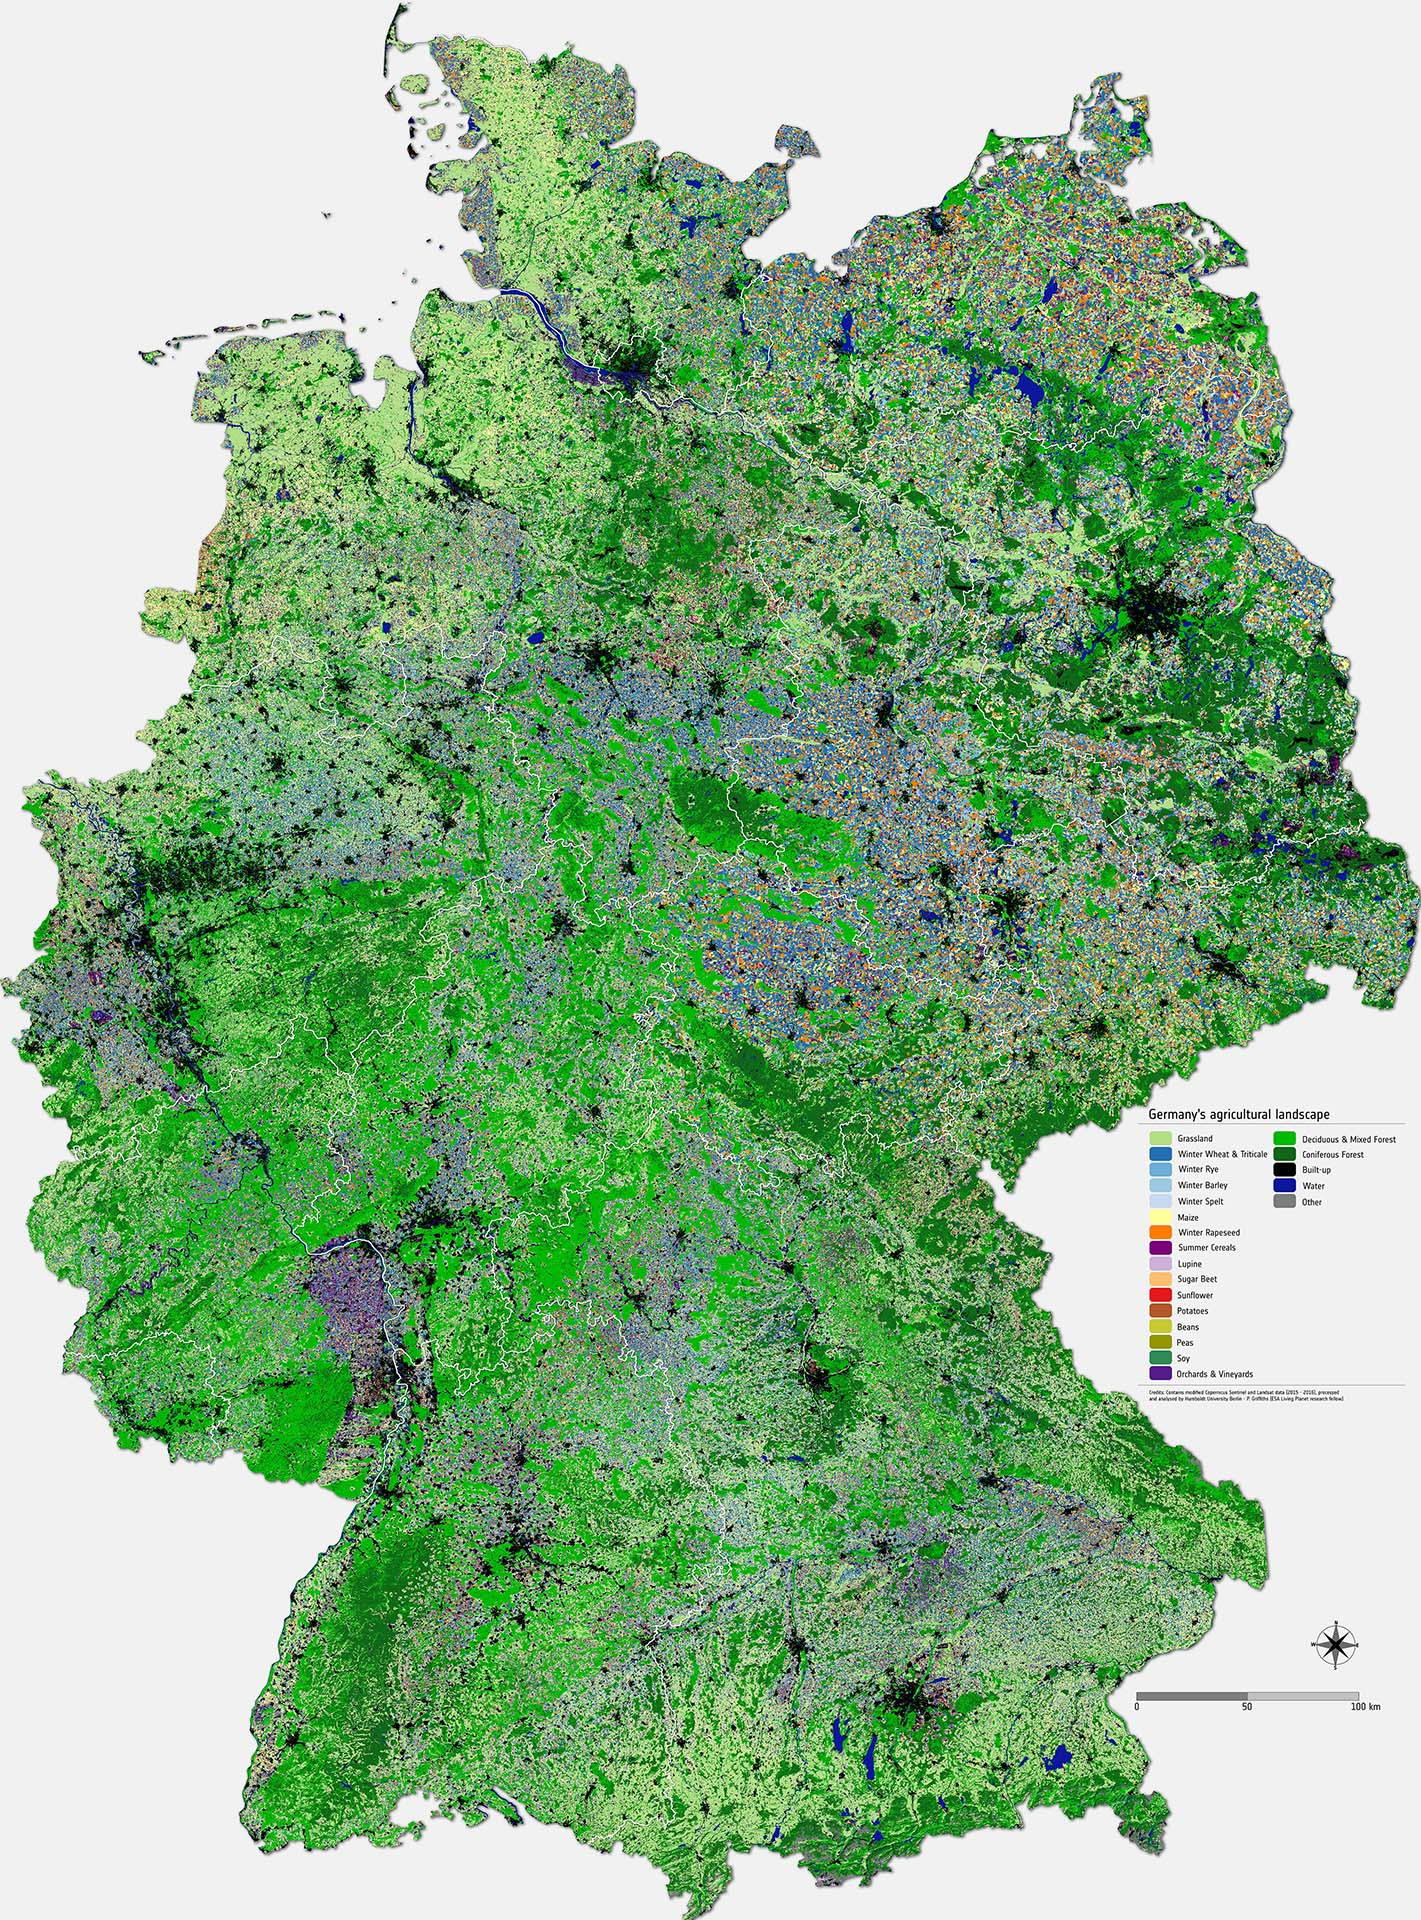 Map Of Germany Jpg.Space In Images 2017 08 Mapping Germany S Agricultural Landscape